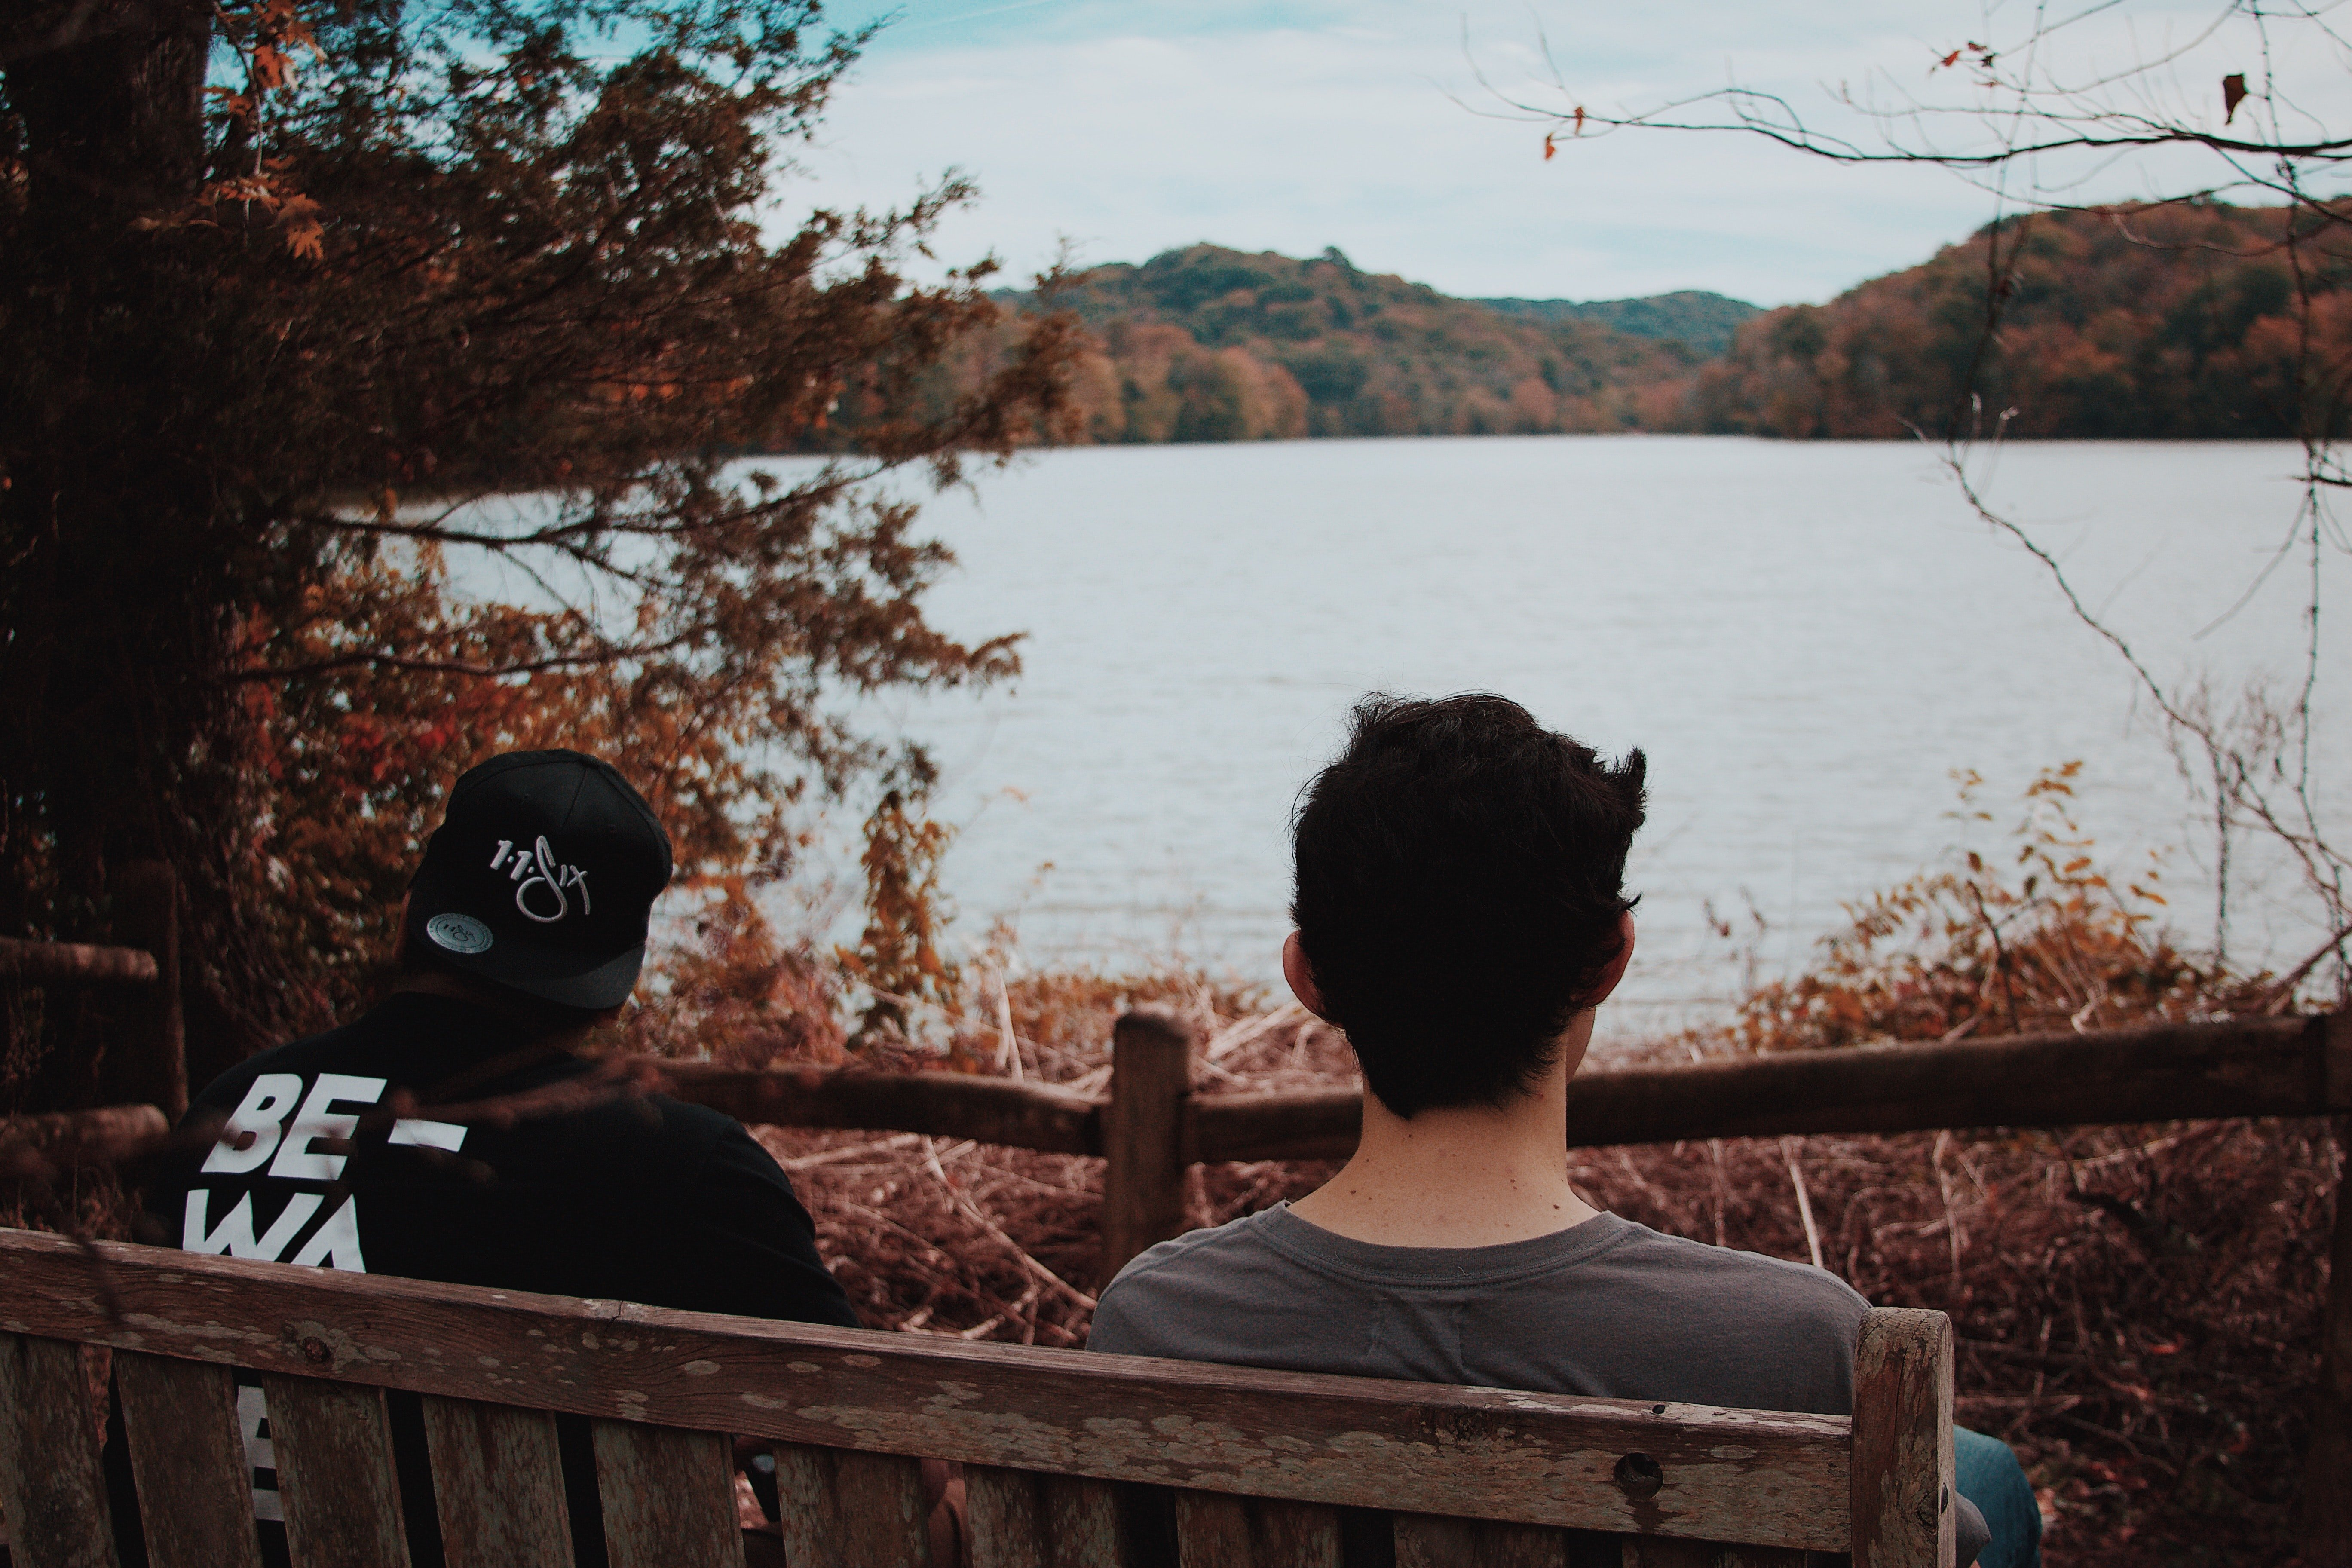 Two men watch a beautiful landscape while recalling their past | Photo: Unsplash